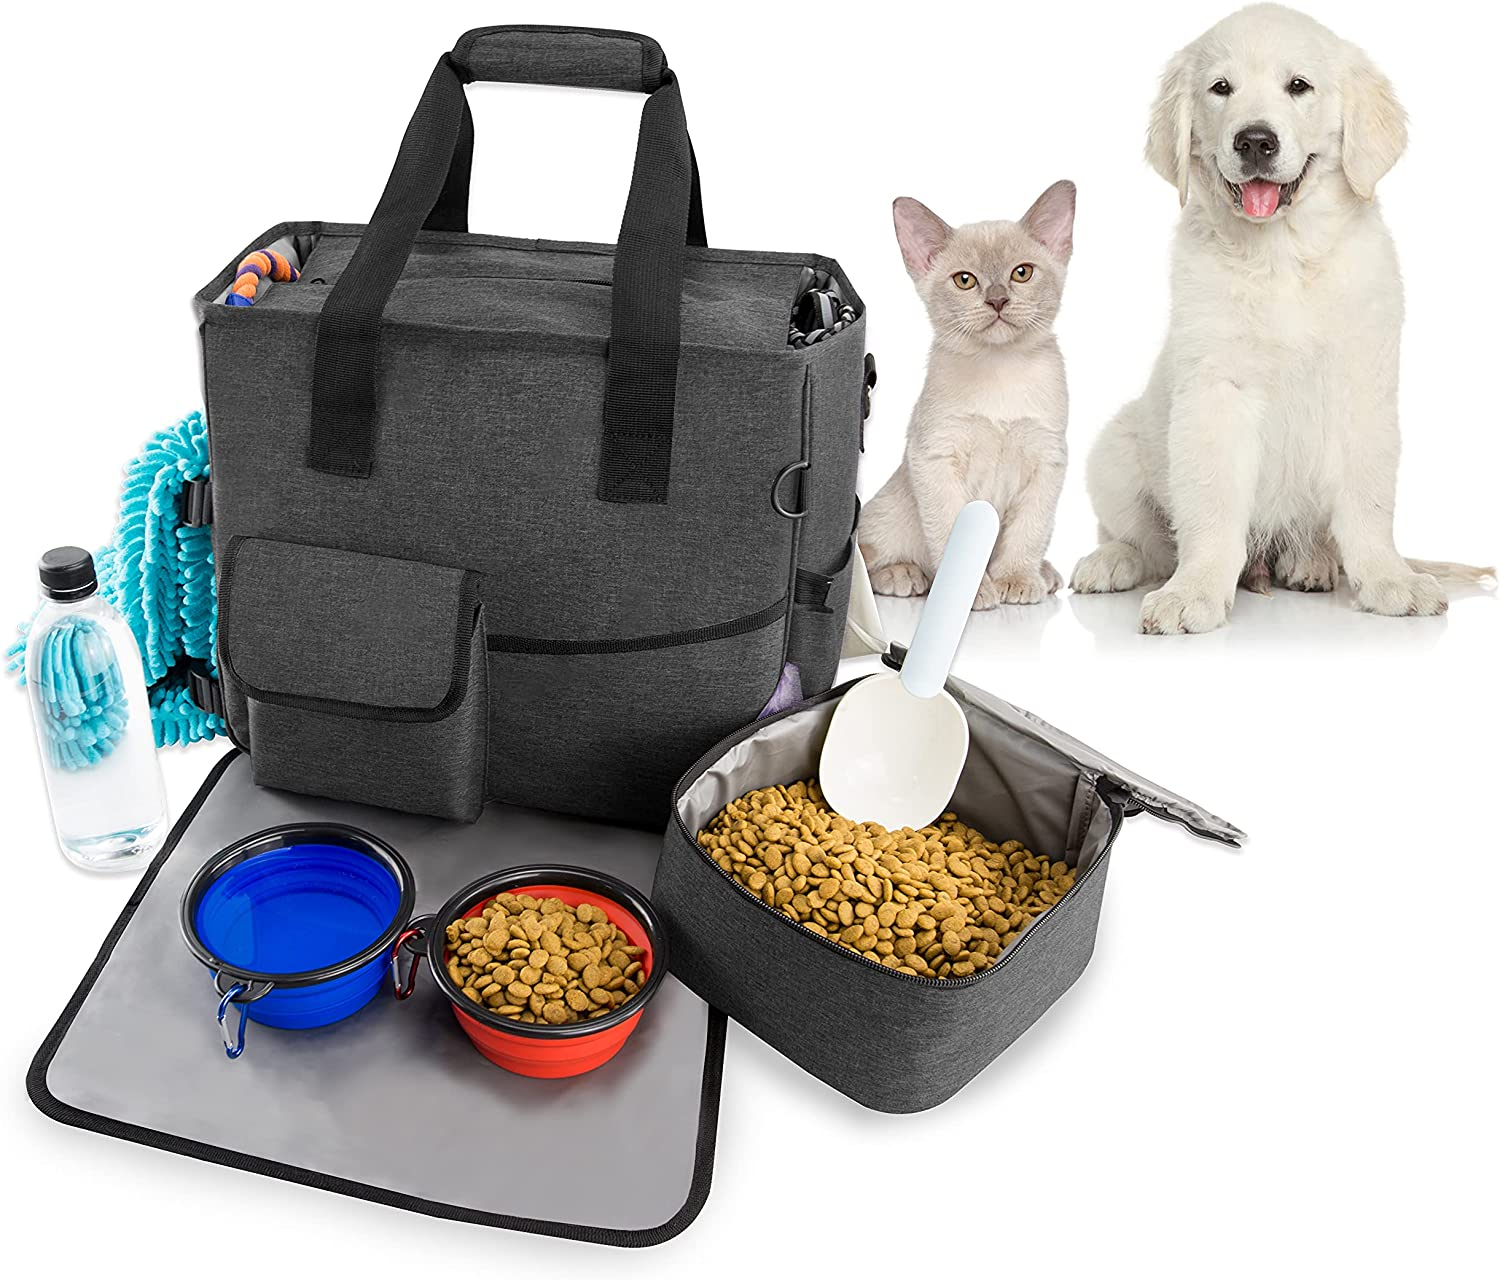 Dog Travel Bag Airline Approved Water Resistantl Pet Travel Bag Dog Accessories with 1 Food Storage Containers1 Waterproof Mat and 2 Collapsible Bowls for a Weekend Away Organizer (Black)